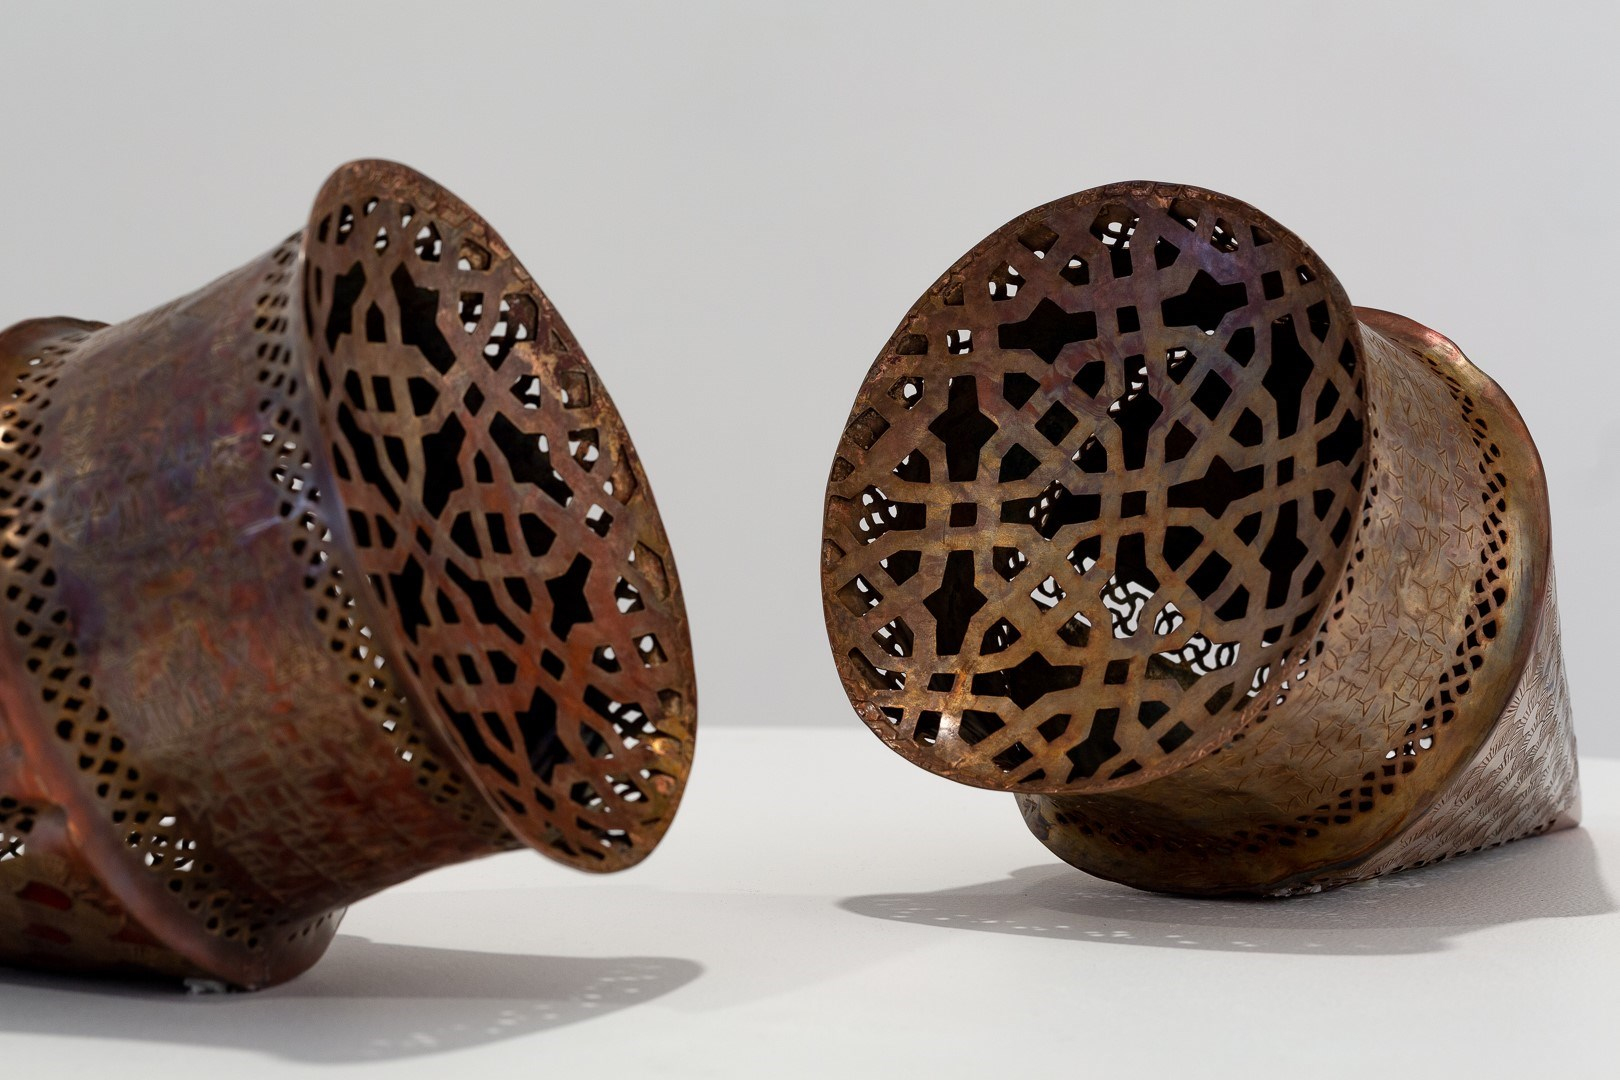 Shireen Taweel, Switching Codes. Pierced and Engraved Copper pieces. Image by Document Photography.